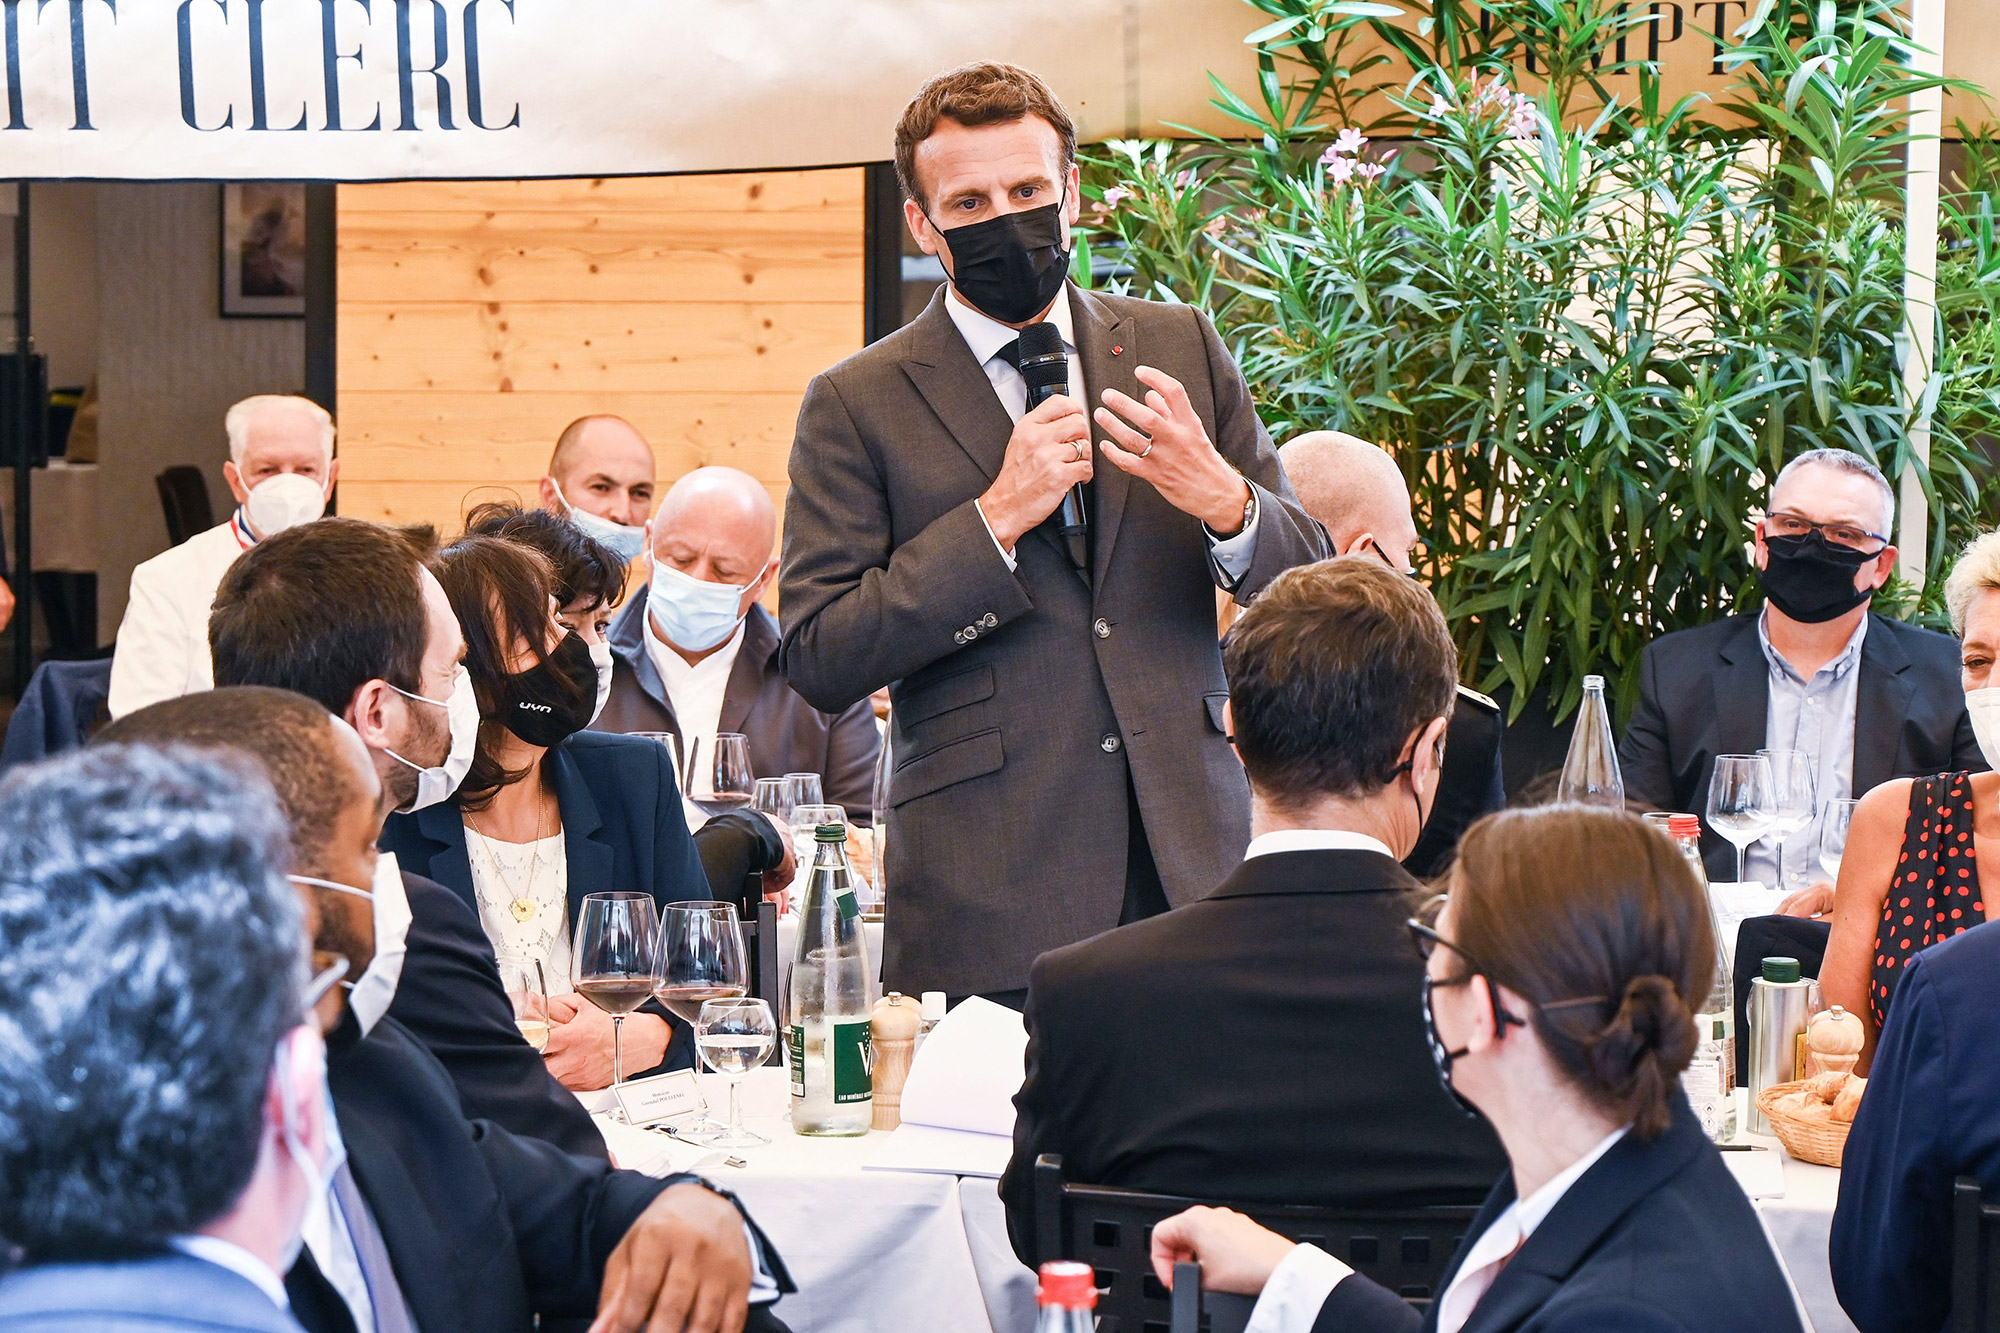 French President Emmanuel Macron delivers a speech before a lunch in Valence, on June 8, 2021